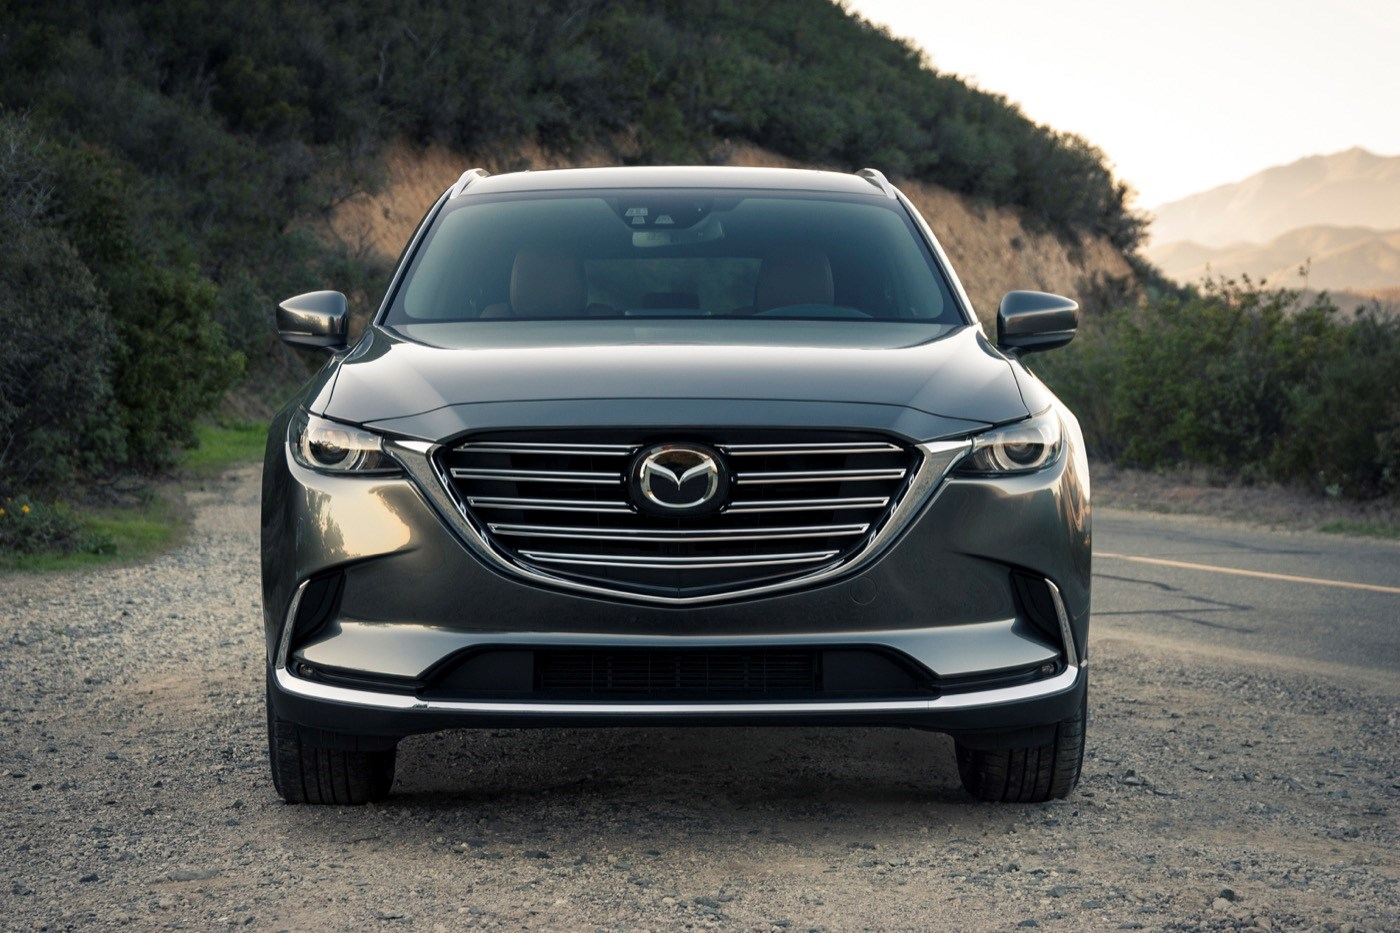 2016 Mazda CX-9 Australian Pricing, Details Leaked Thumbnail